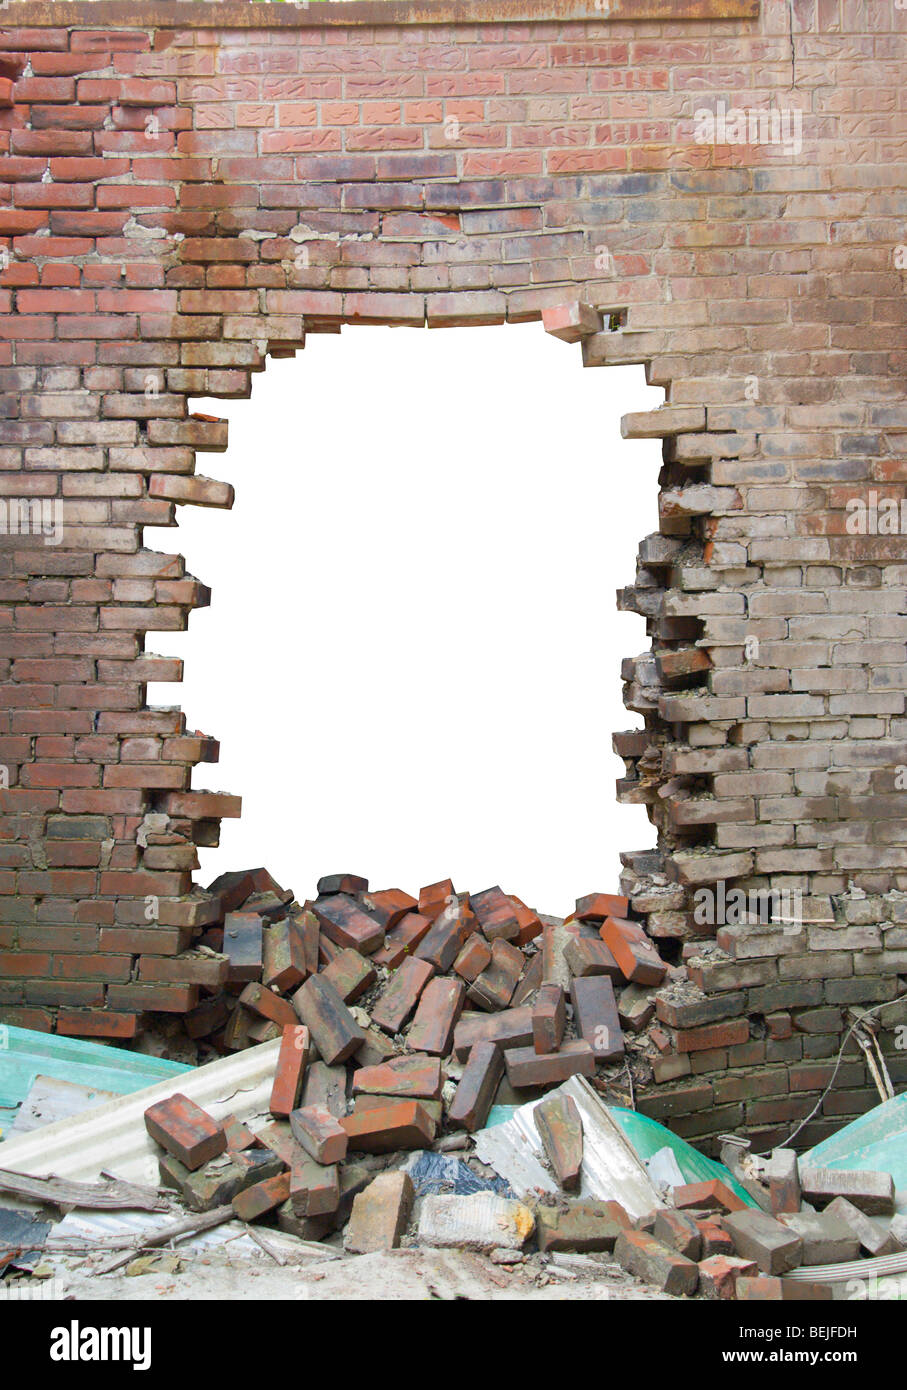 Old brick wall with large hole smashed through Stock Photo ...